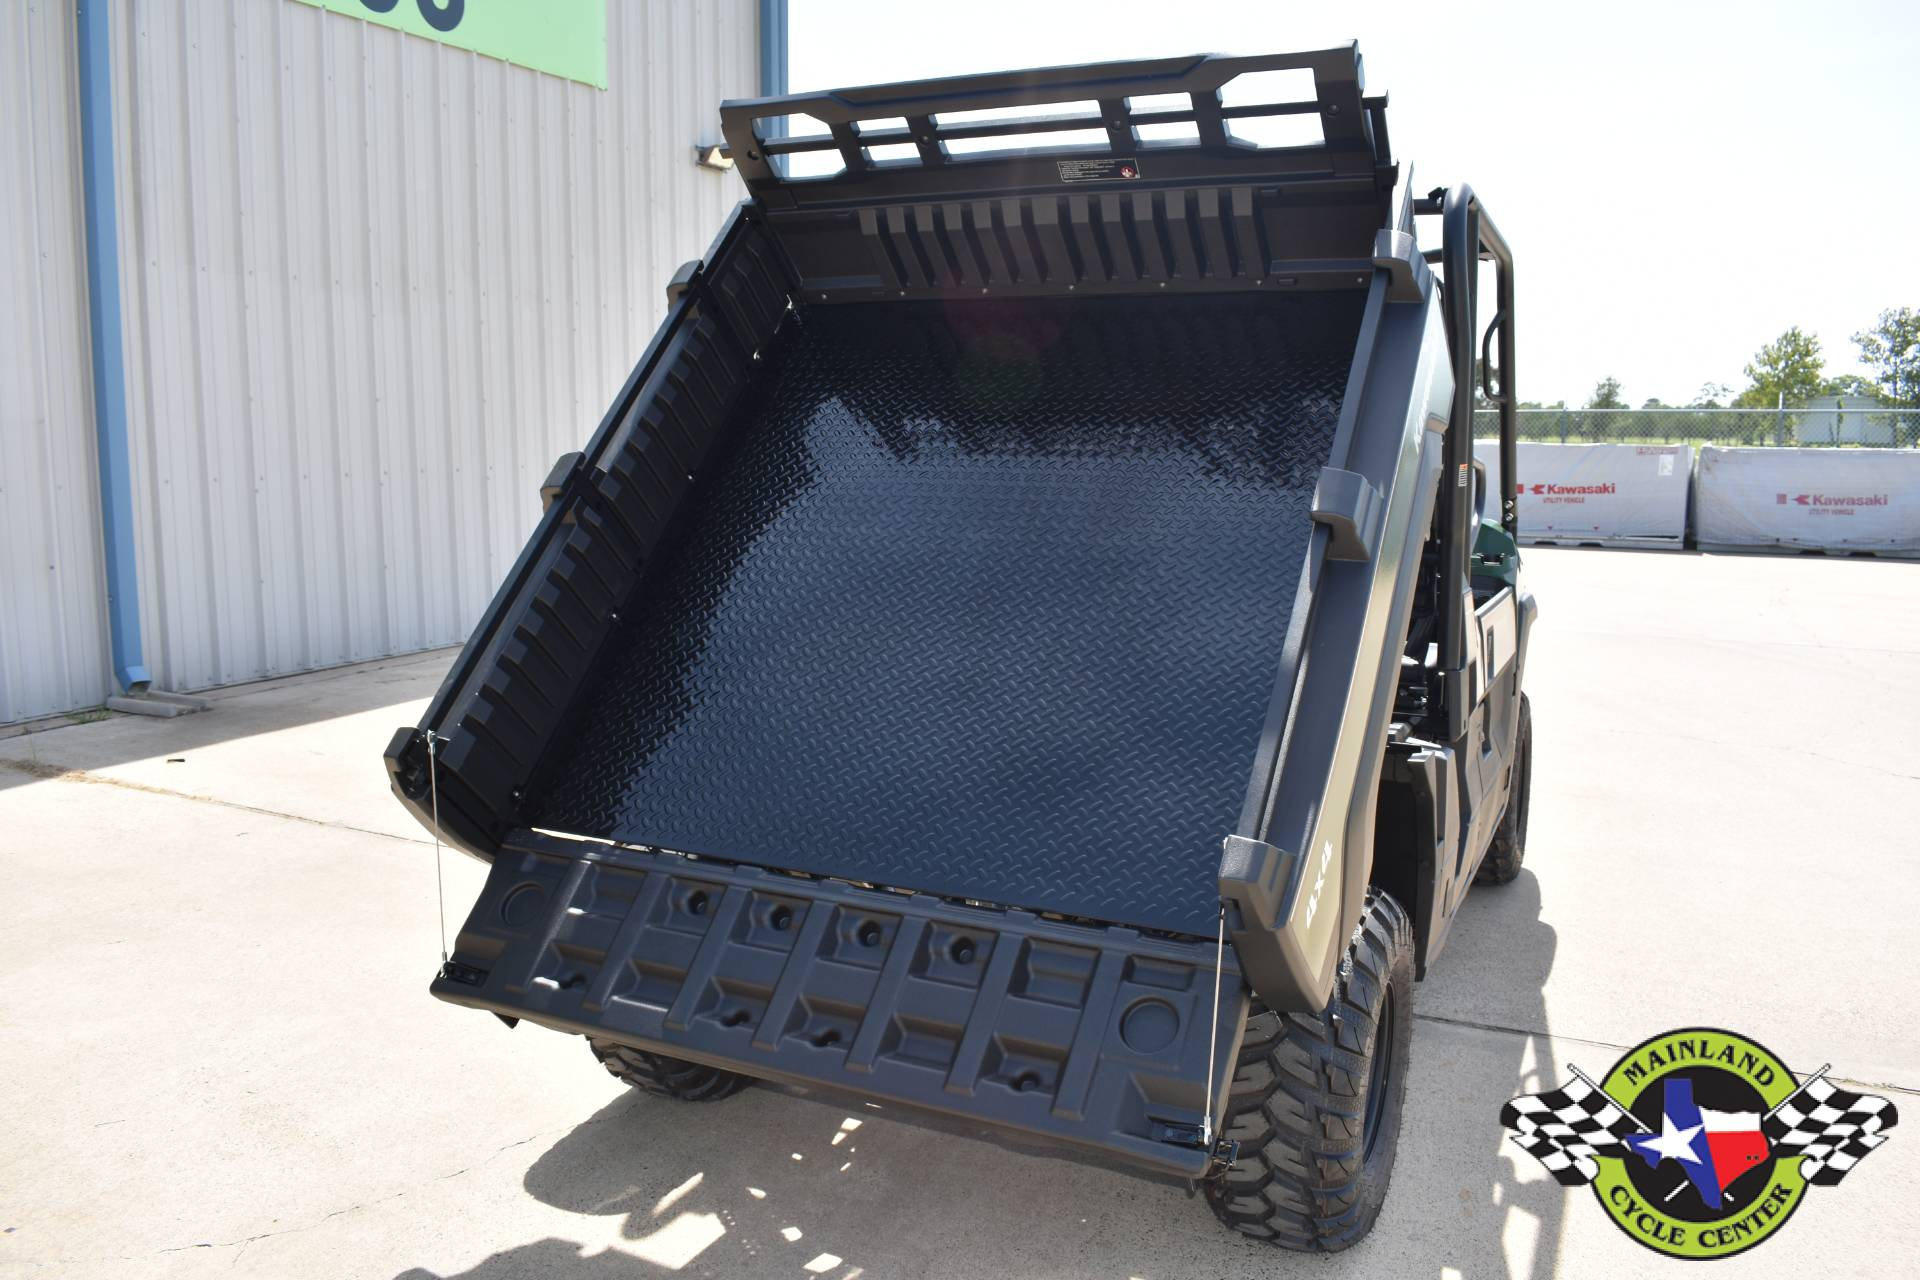 2020 Kawasaki Mule PRO-FX EPS in La Marque, Texas - Photo 13